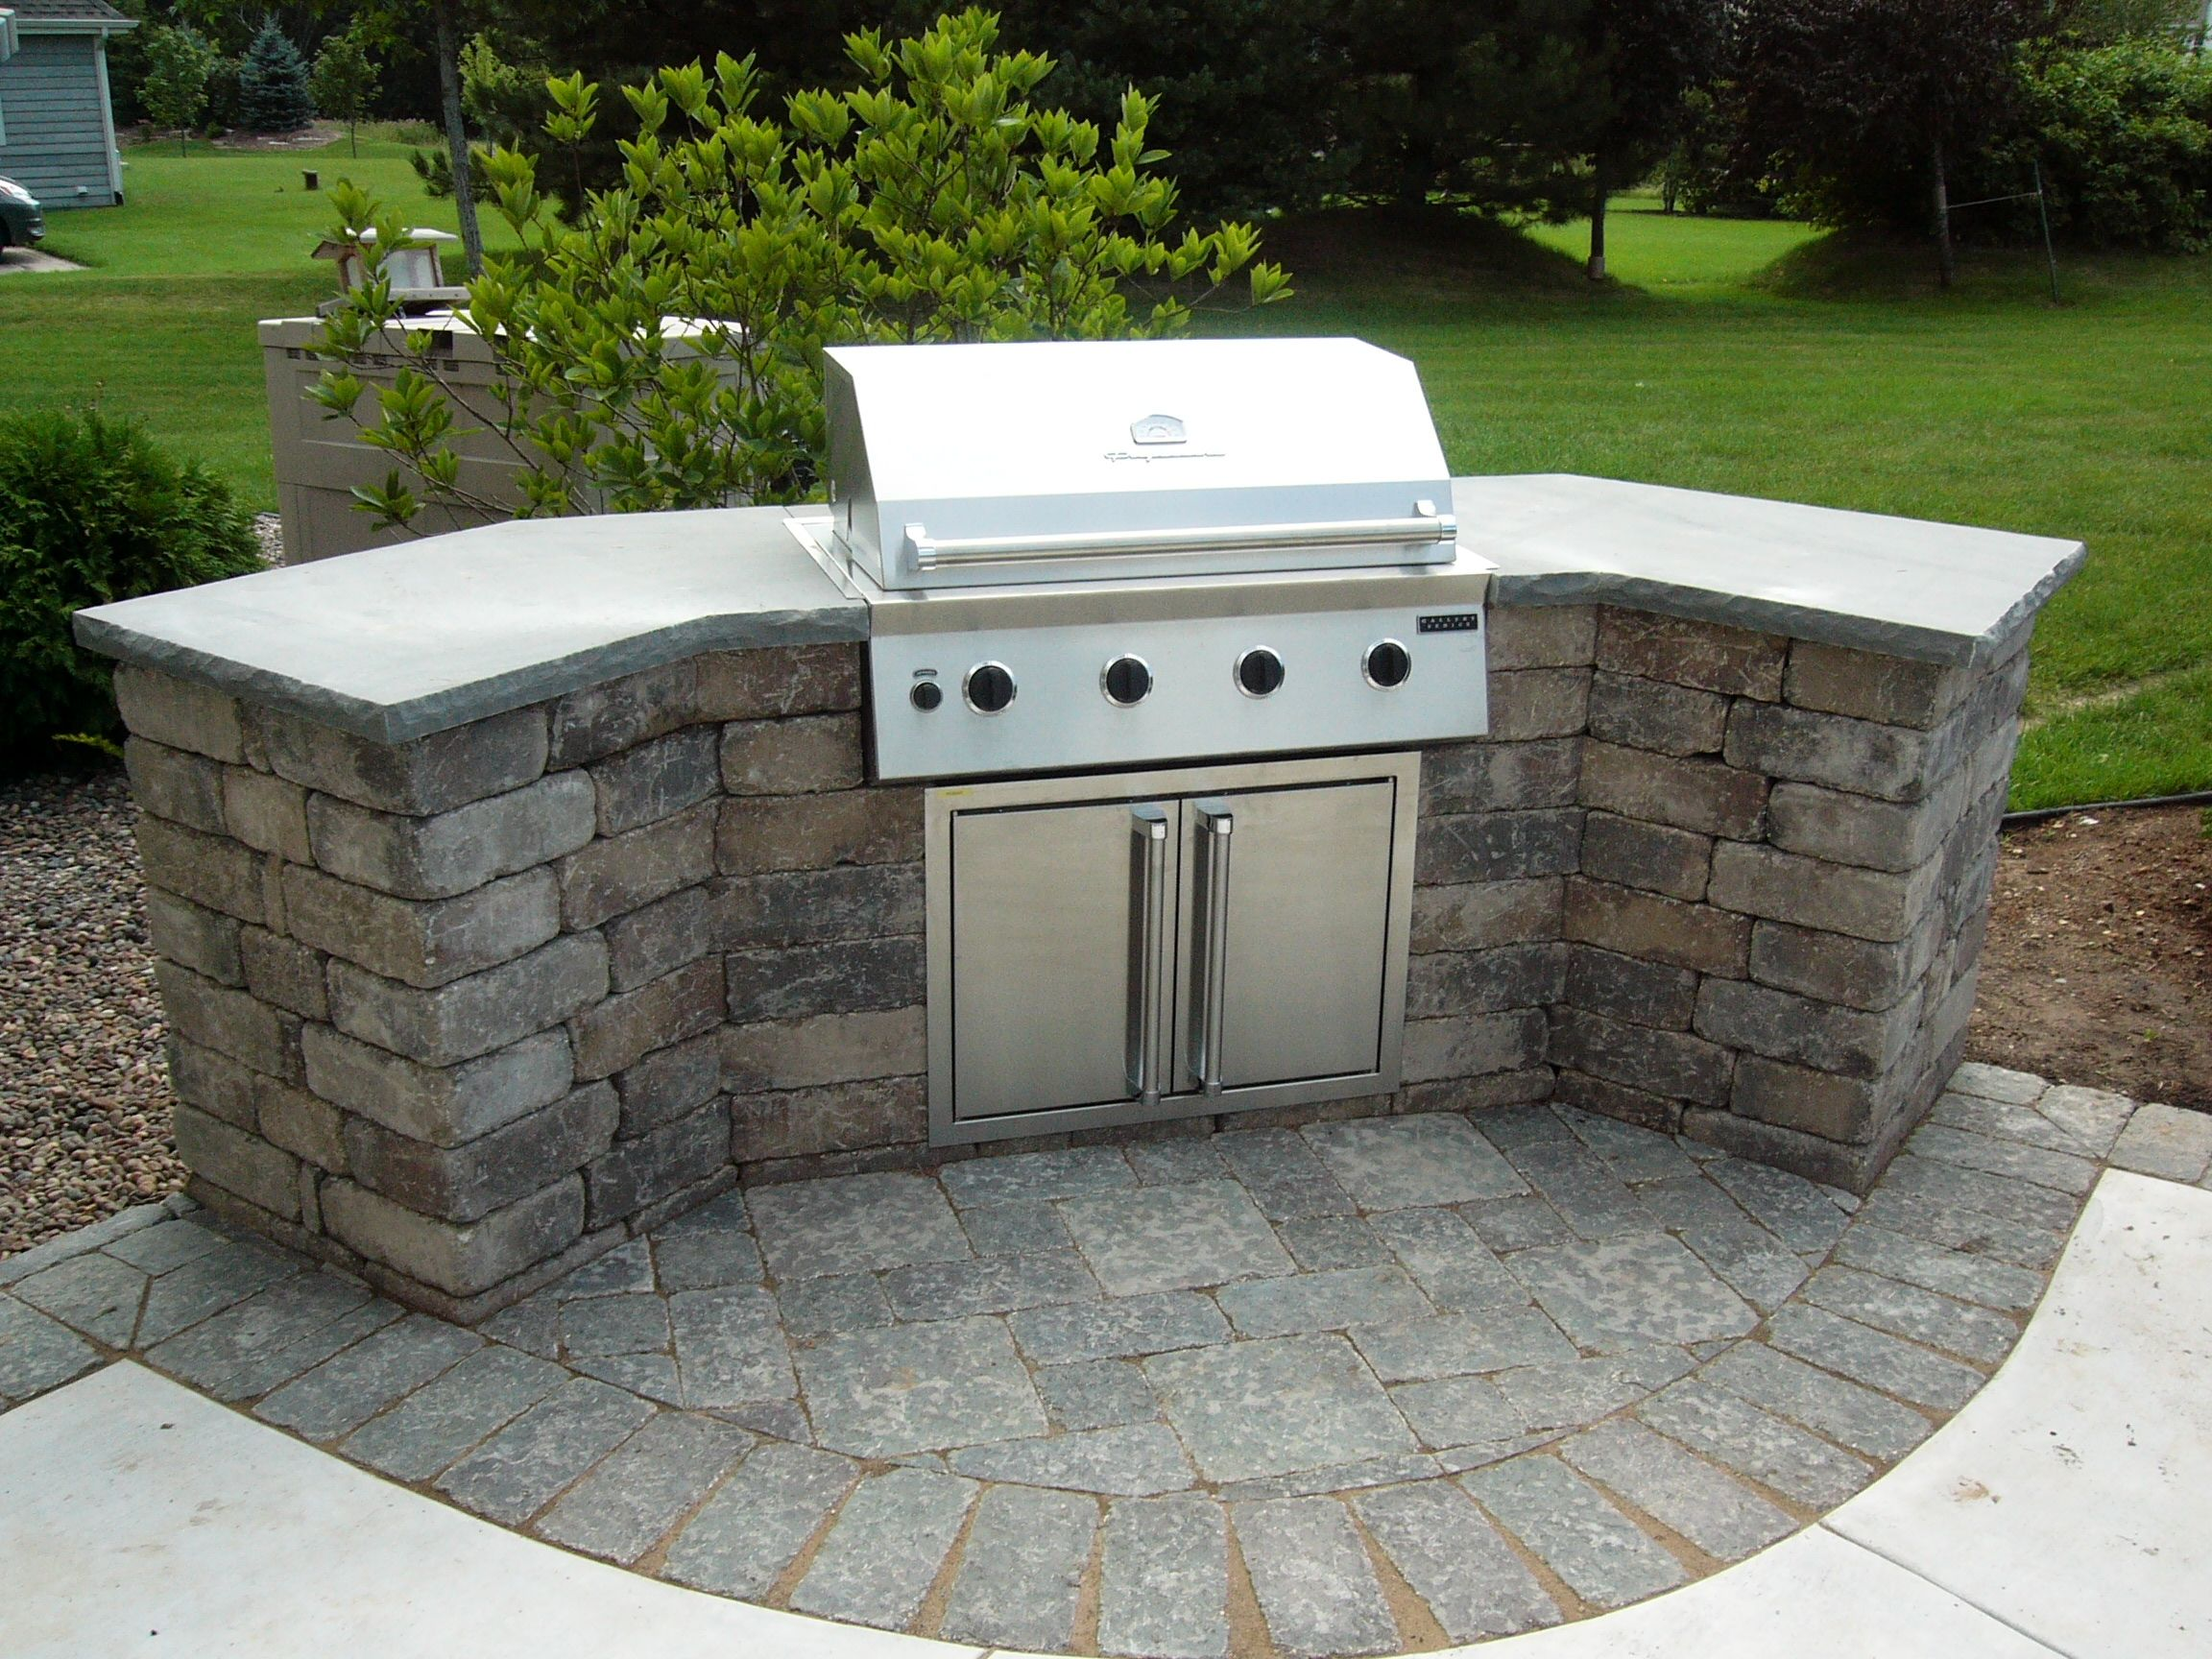 Gas grill built into Old Quarry Sierra Concrete Block wall with ...